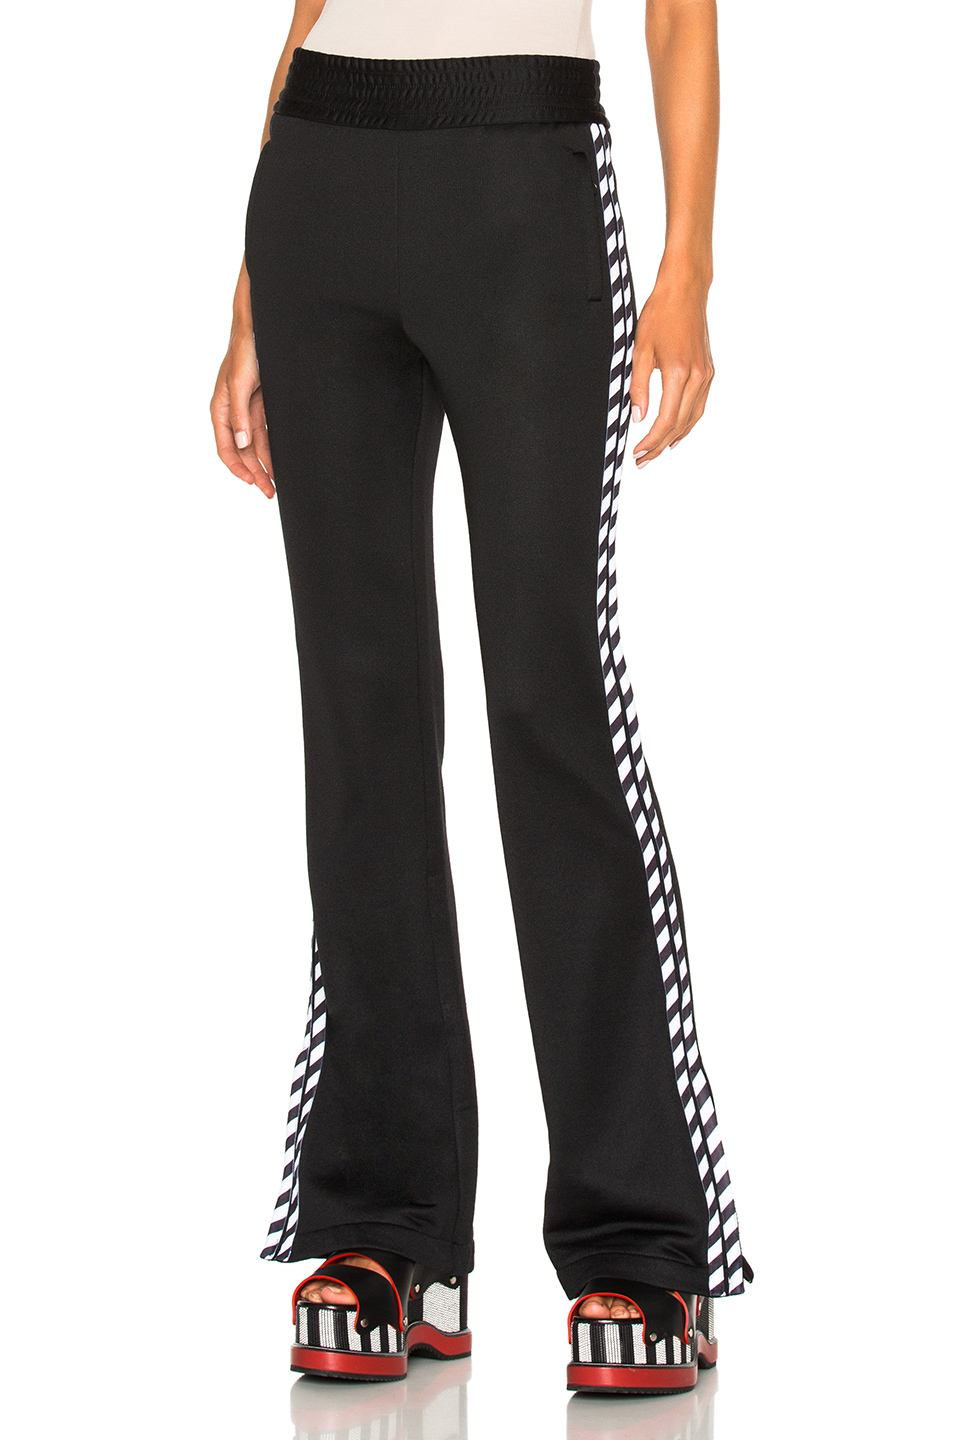 OFF-WHITE Track Pant in Black